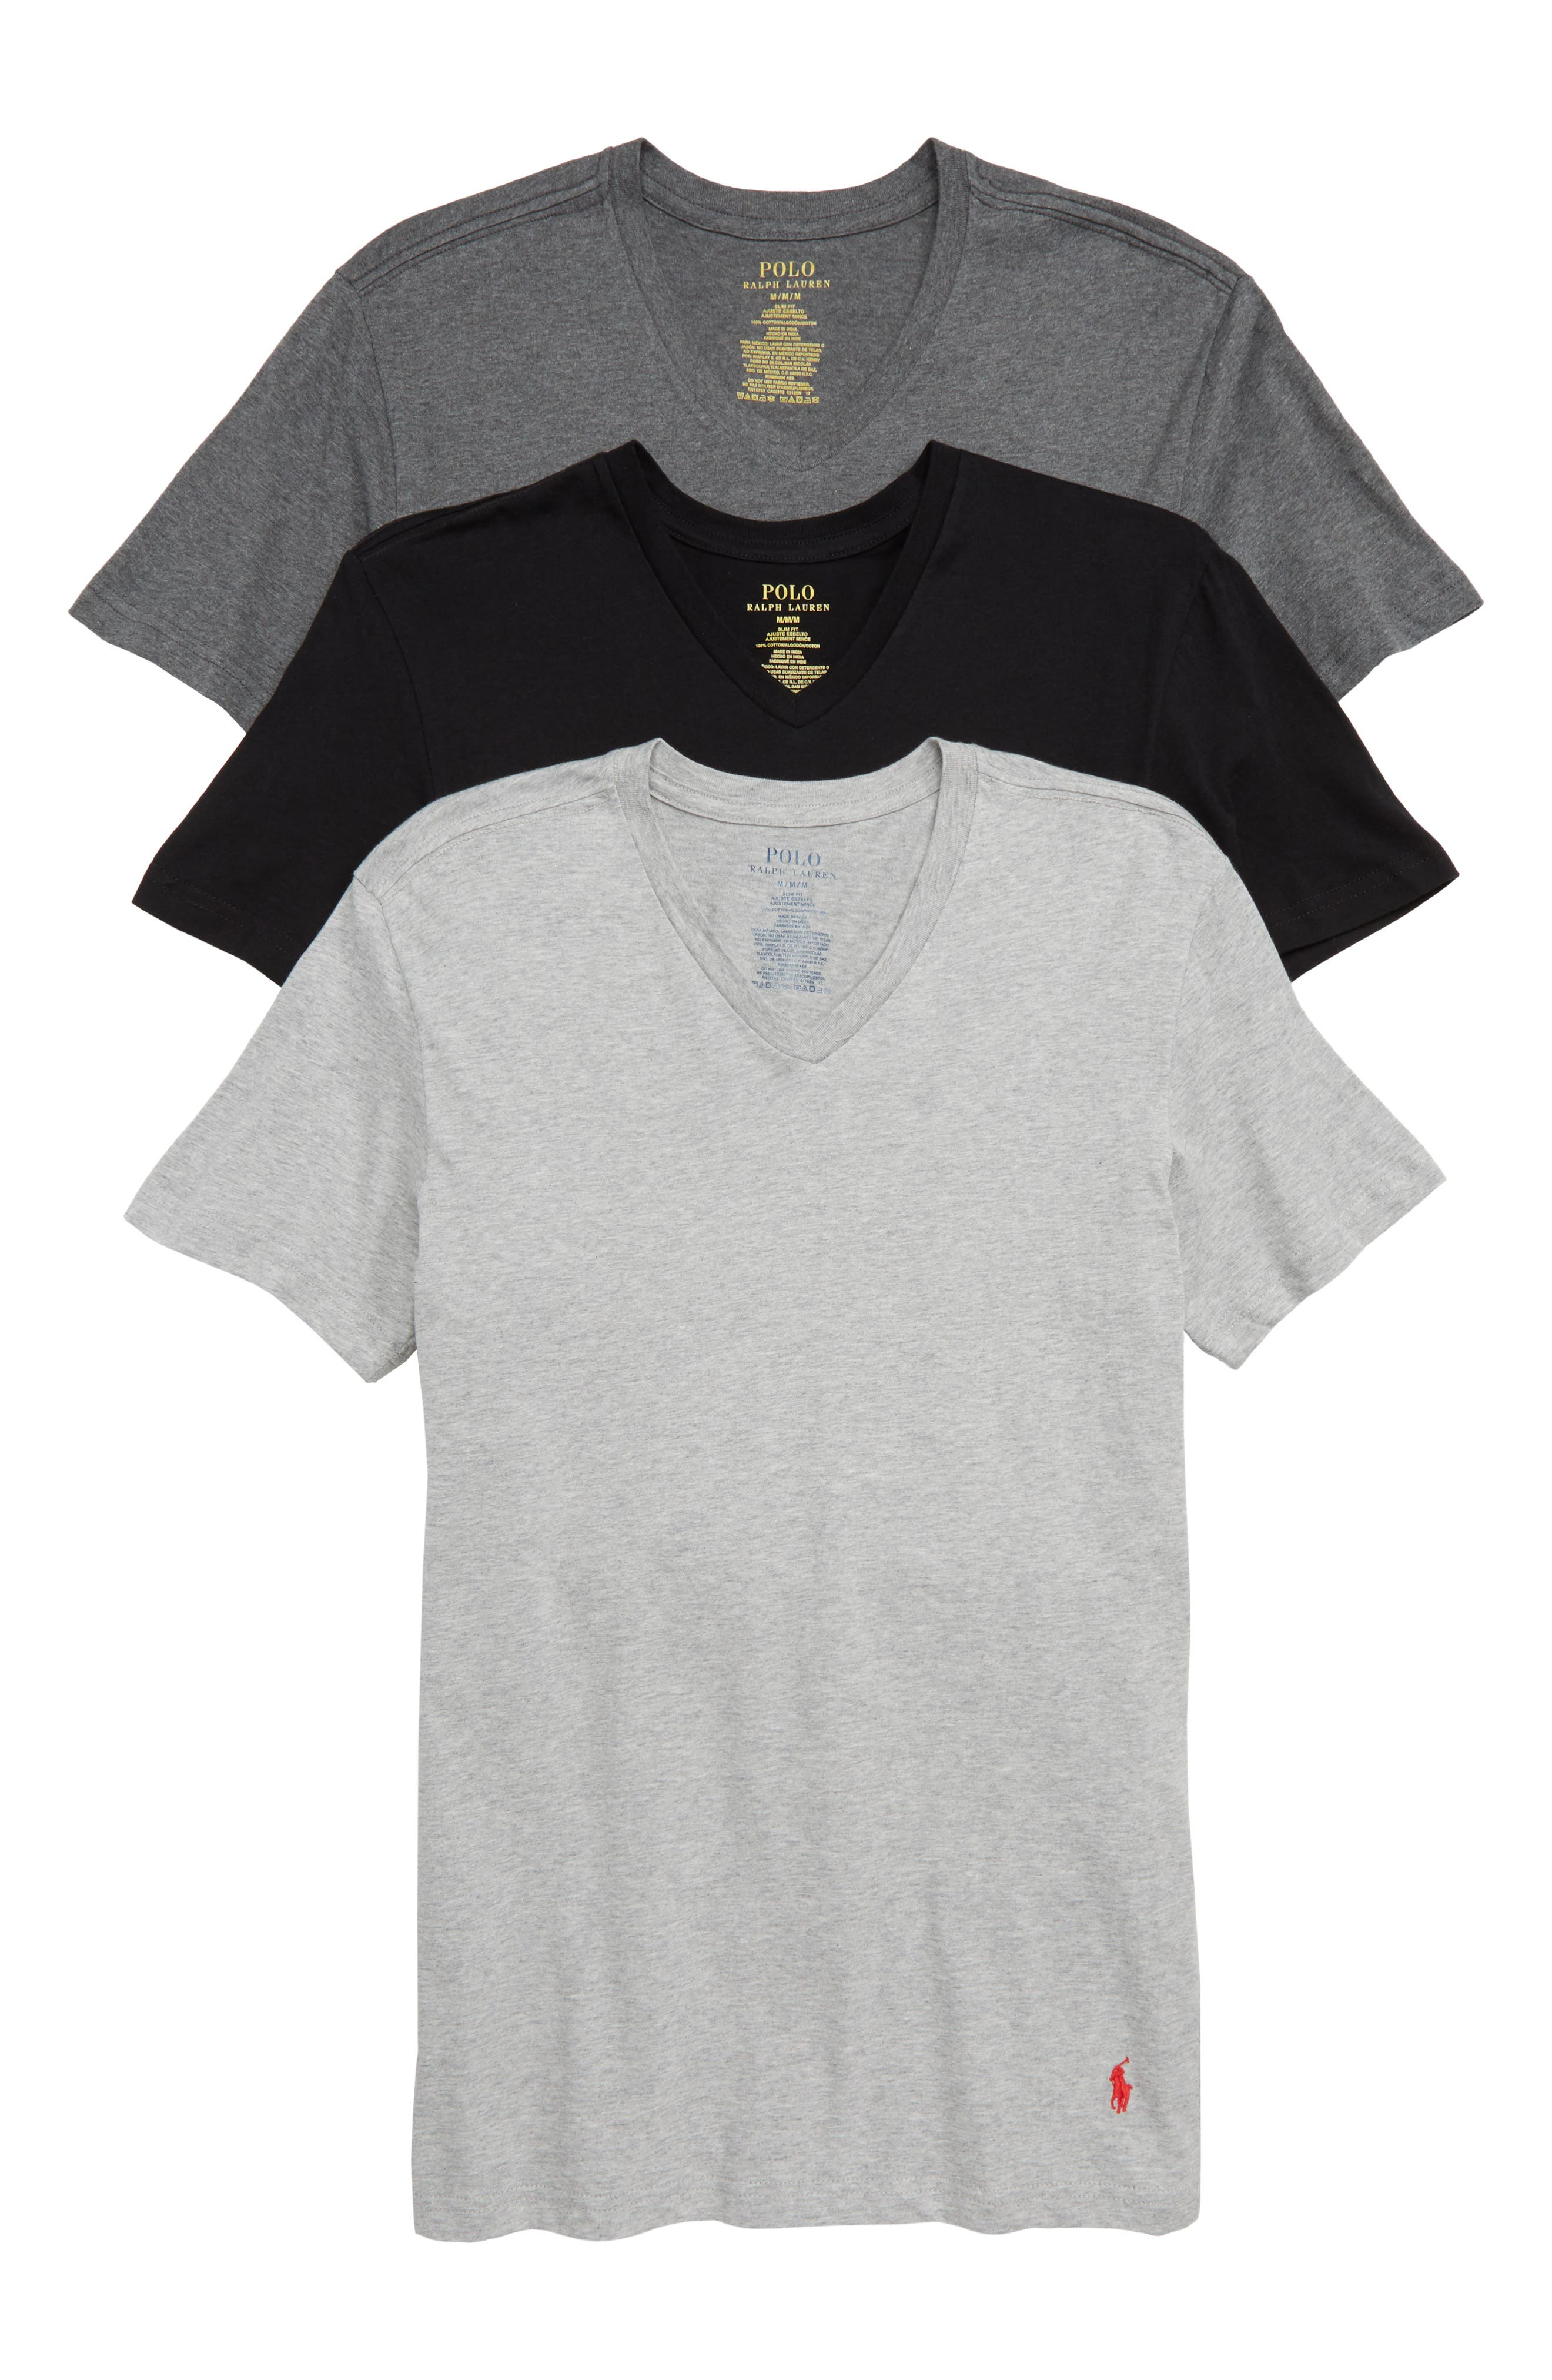 Polo Ralph Lauren 3-Pack Slim Fit V-Neck T-Shirts,                             Main thumbnail 1, color,                             BLACK/ GREY/ CHARCOAL